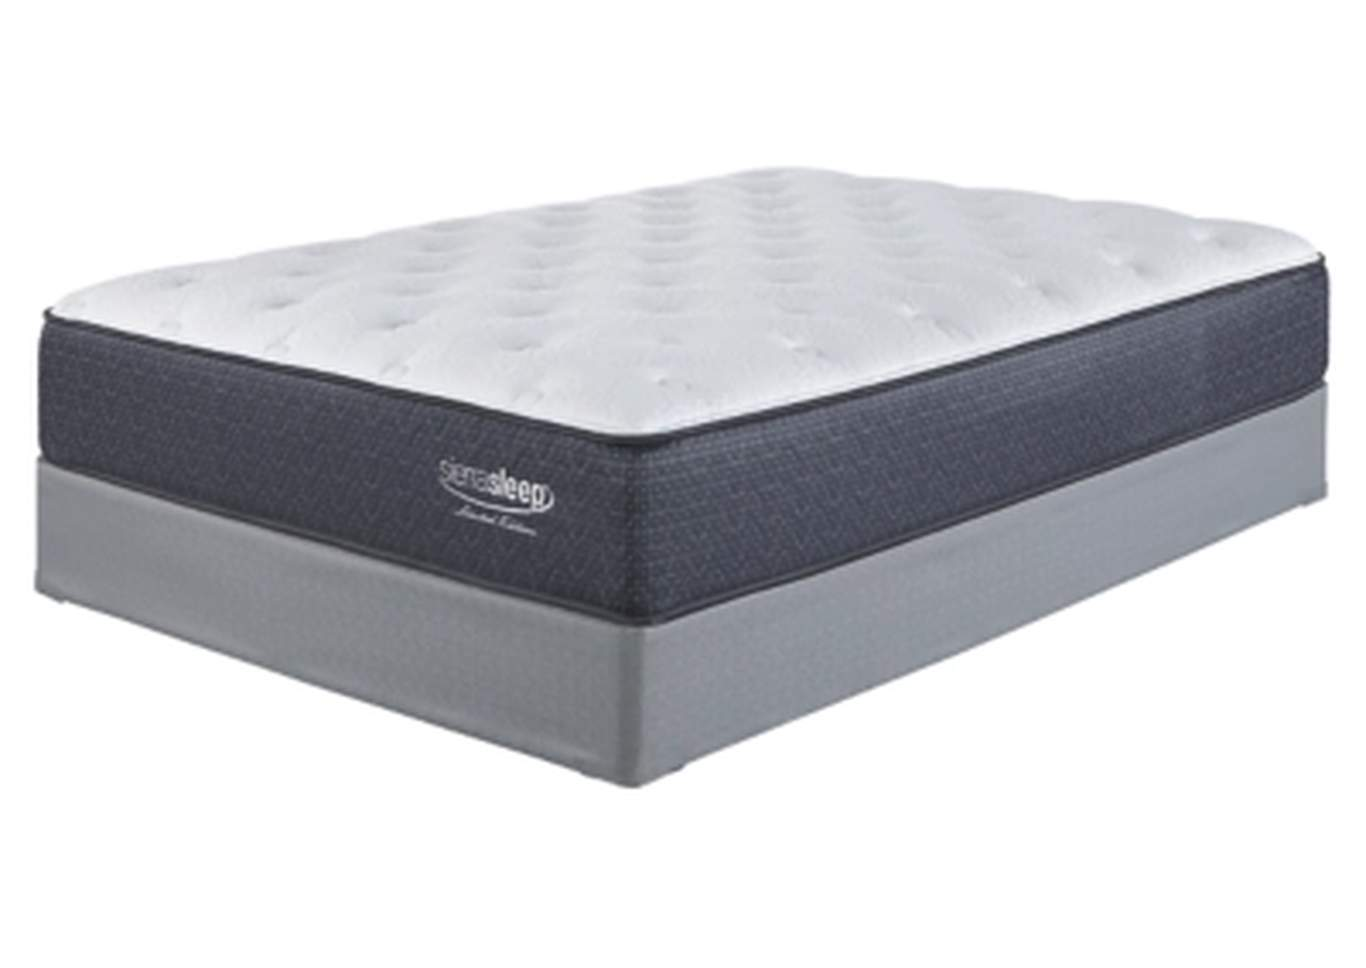 Limited Edition Plush White Full Mattress,Sierra Sleep by Ashley